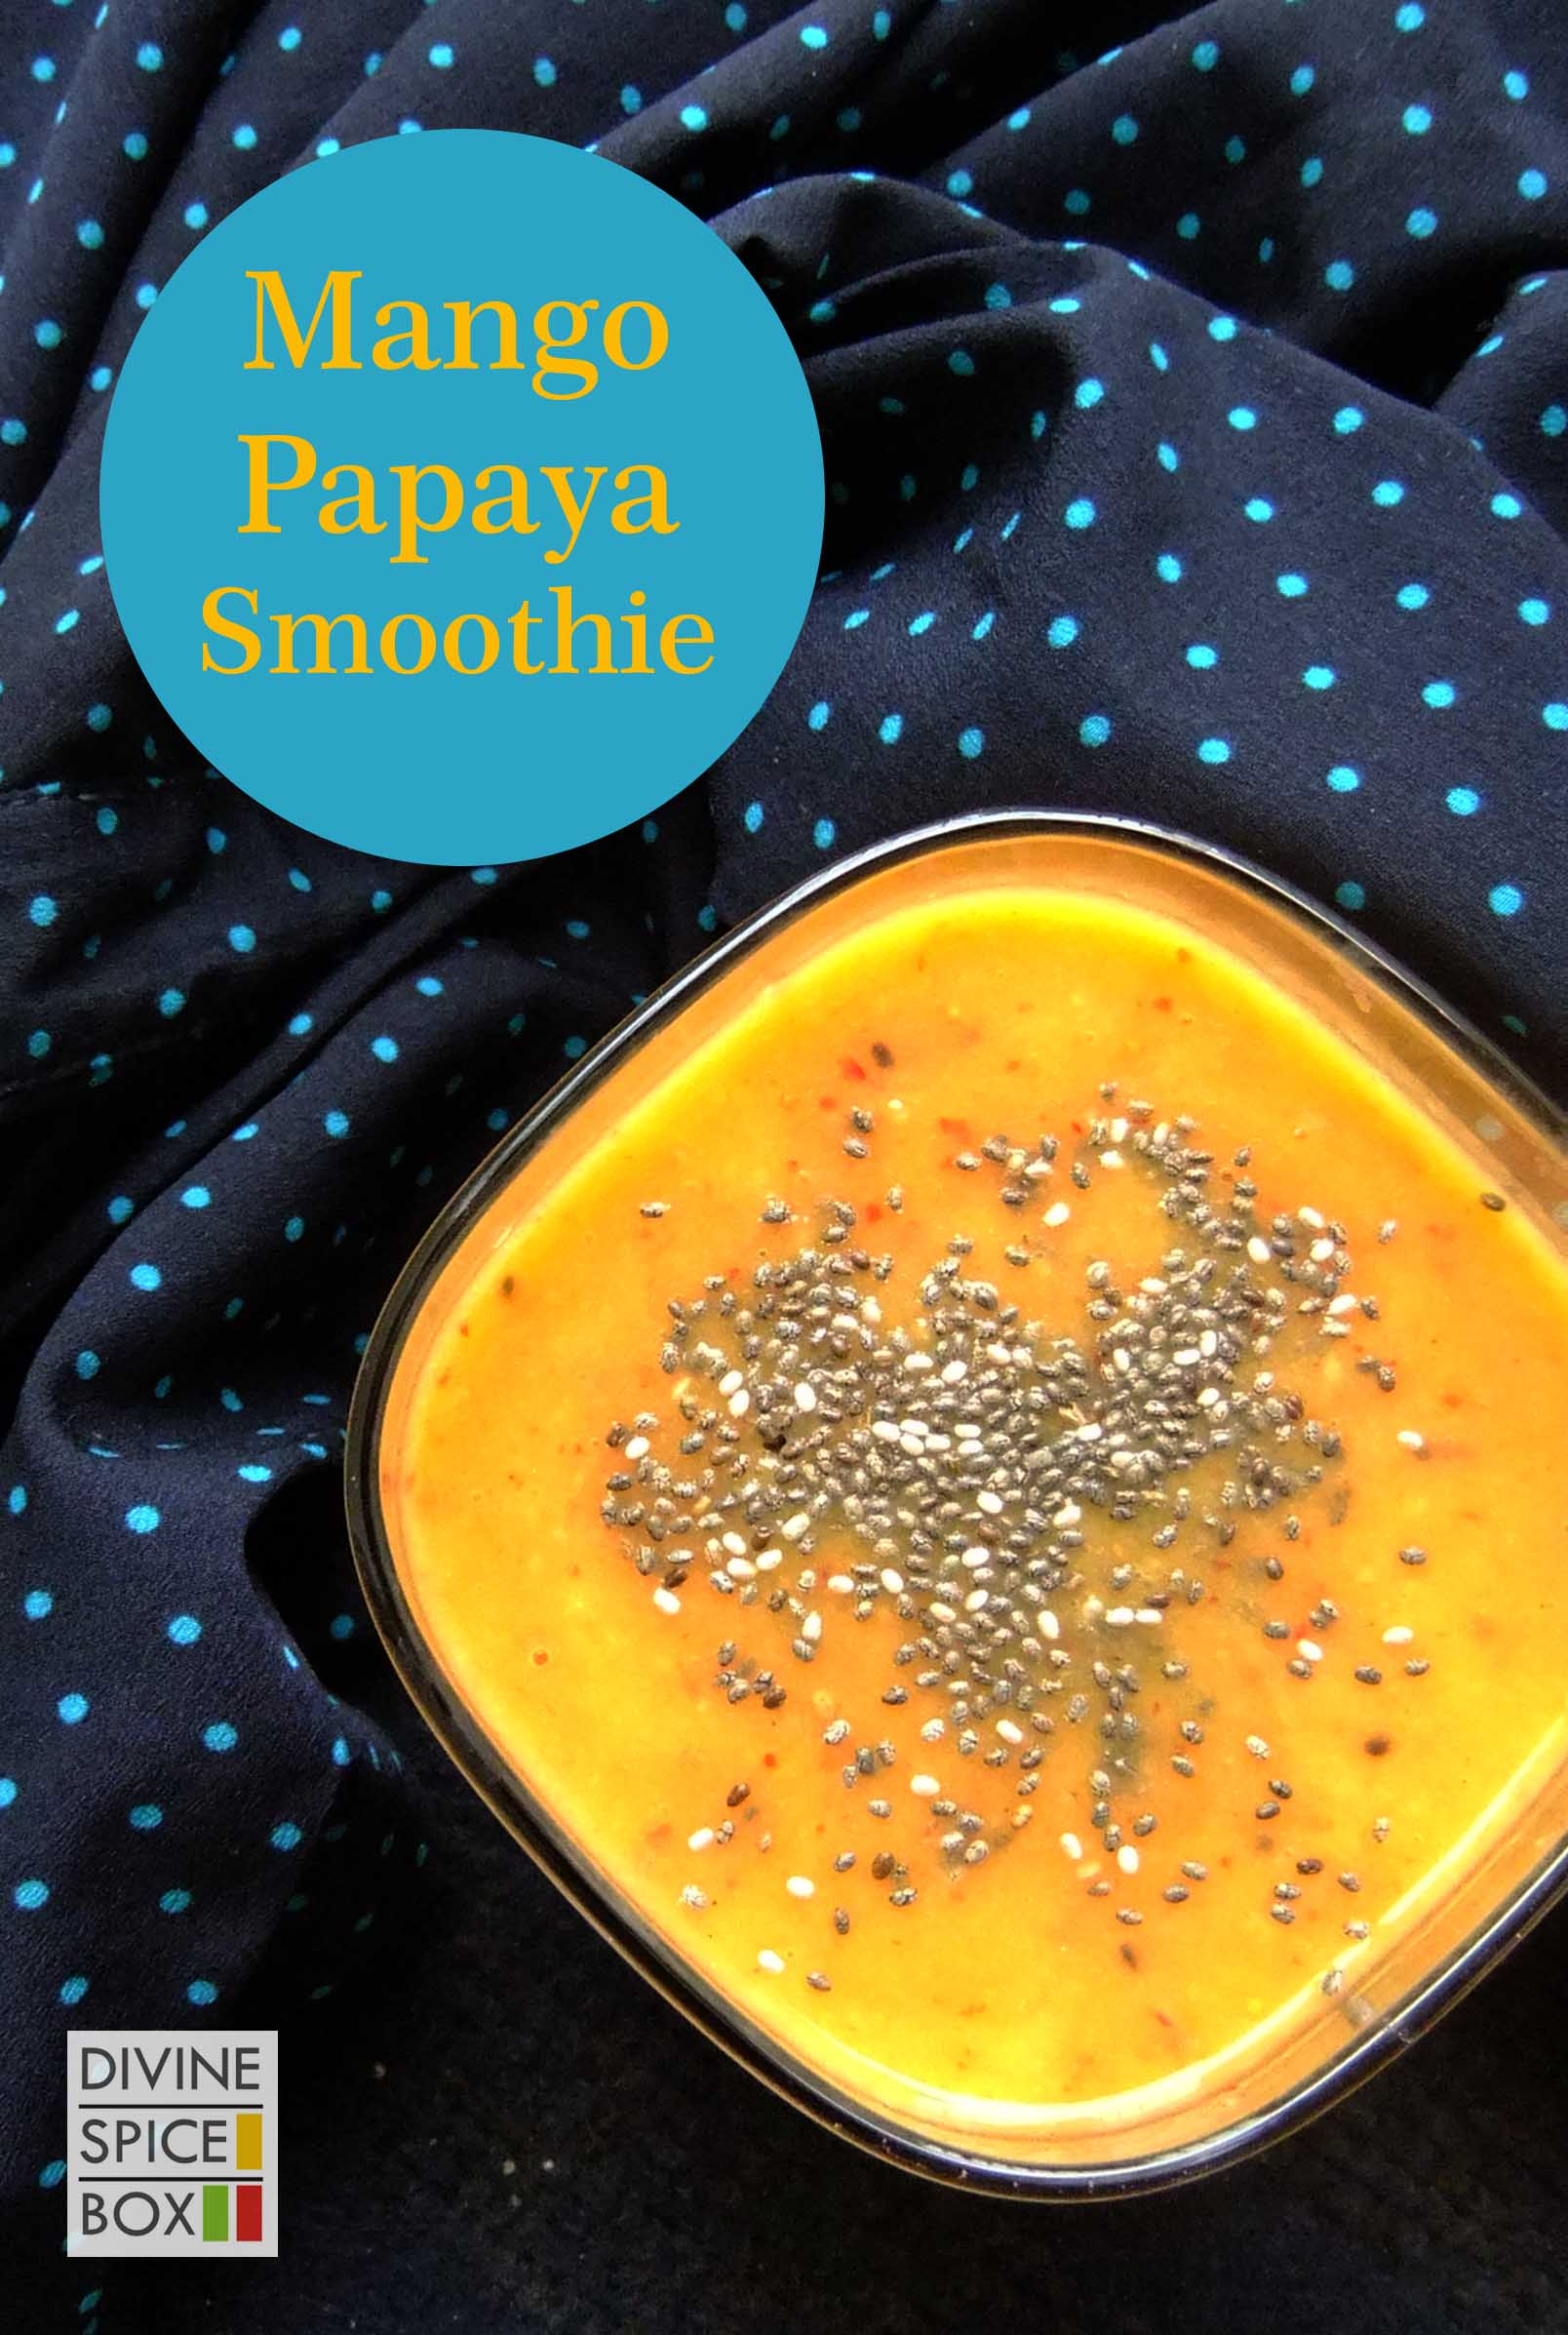 mango papaya Smoothie copy